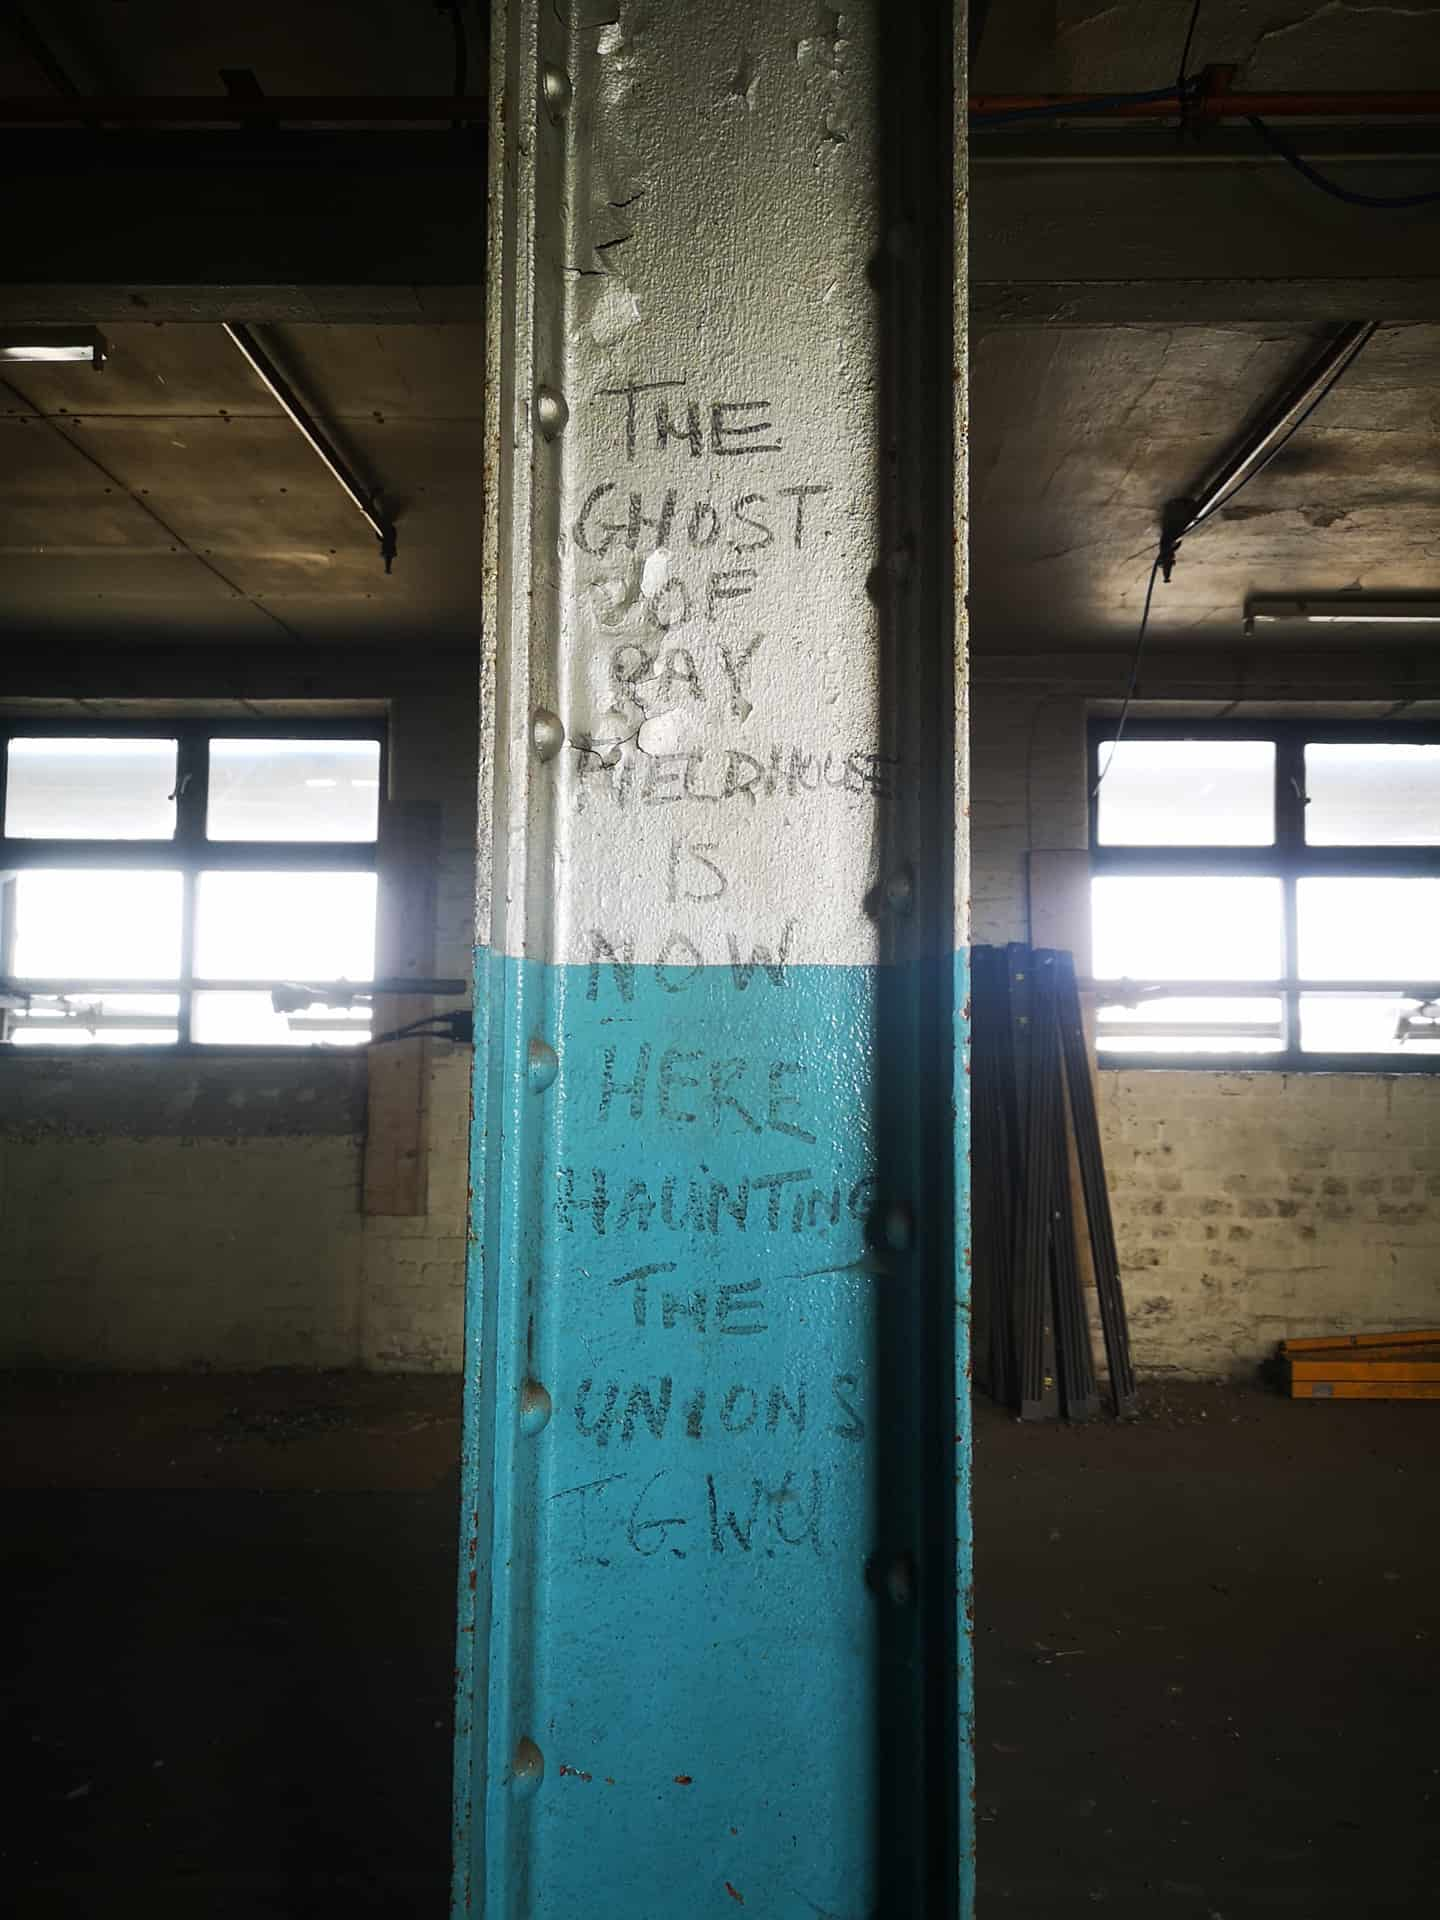 The ghost of Ray Fieldhouse is now here and haunting the unions, T.G.W.Q' Found at CGHS, Smethwick